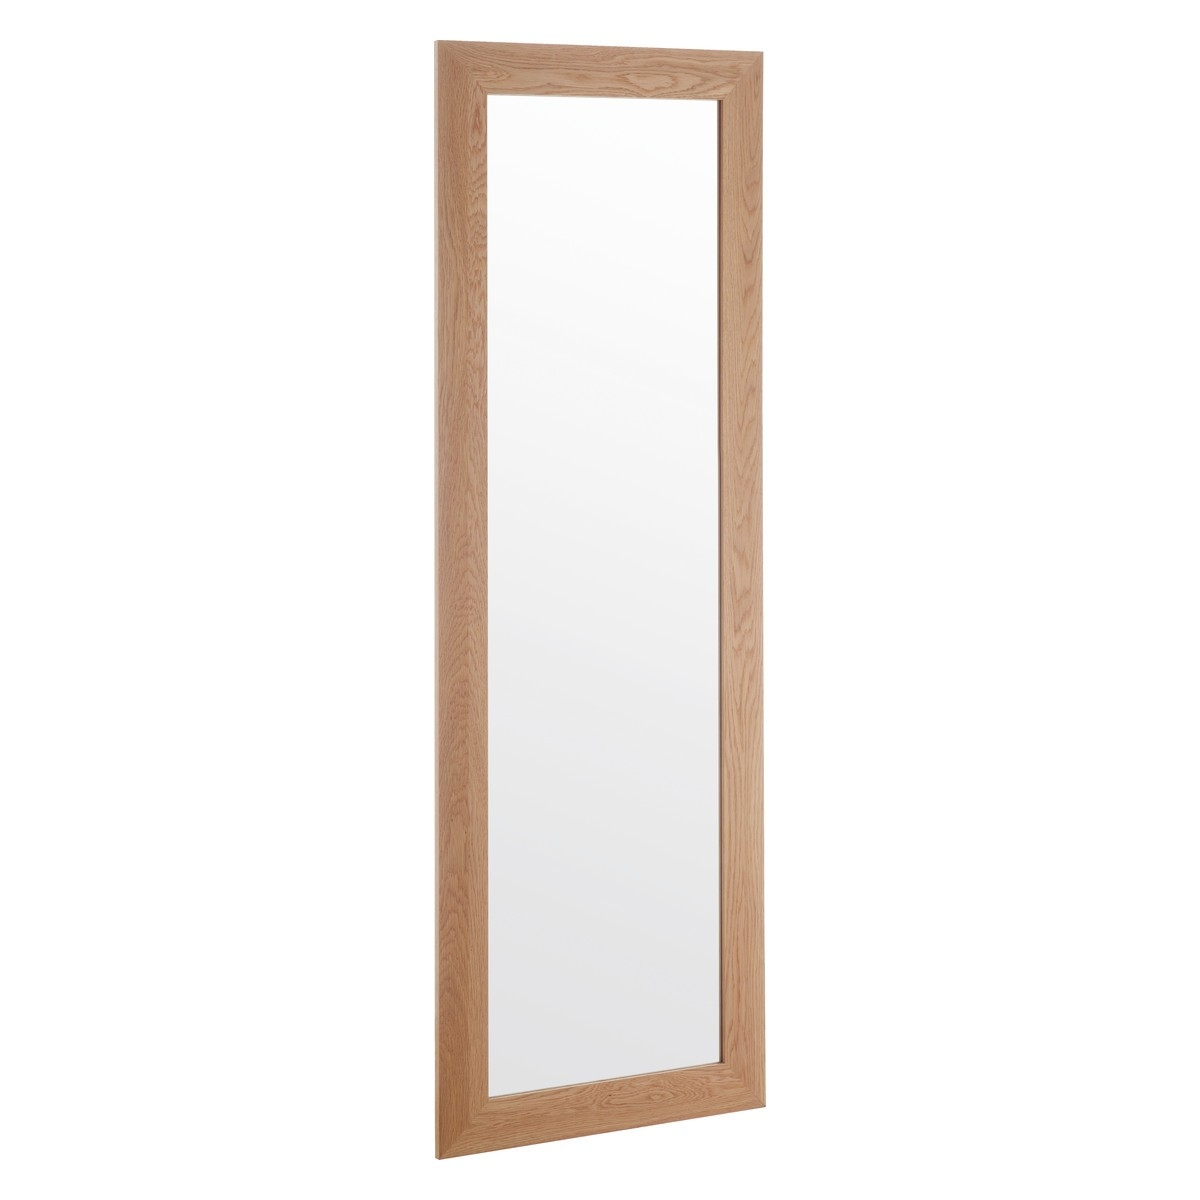 Marlo 40 X 140cm Full Length Oak Wall Mirror Buy Now At Habitat Uk Throughout Oak Wall Mirrors (Image 7 of 15)